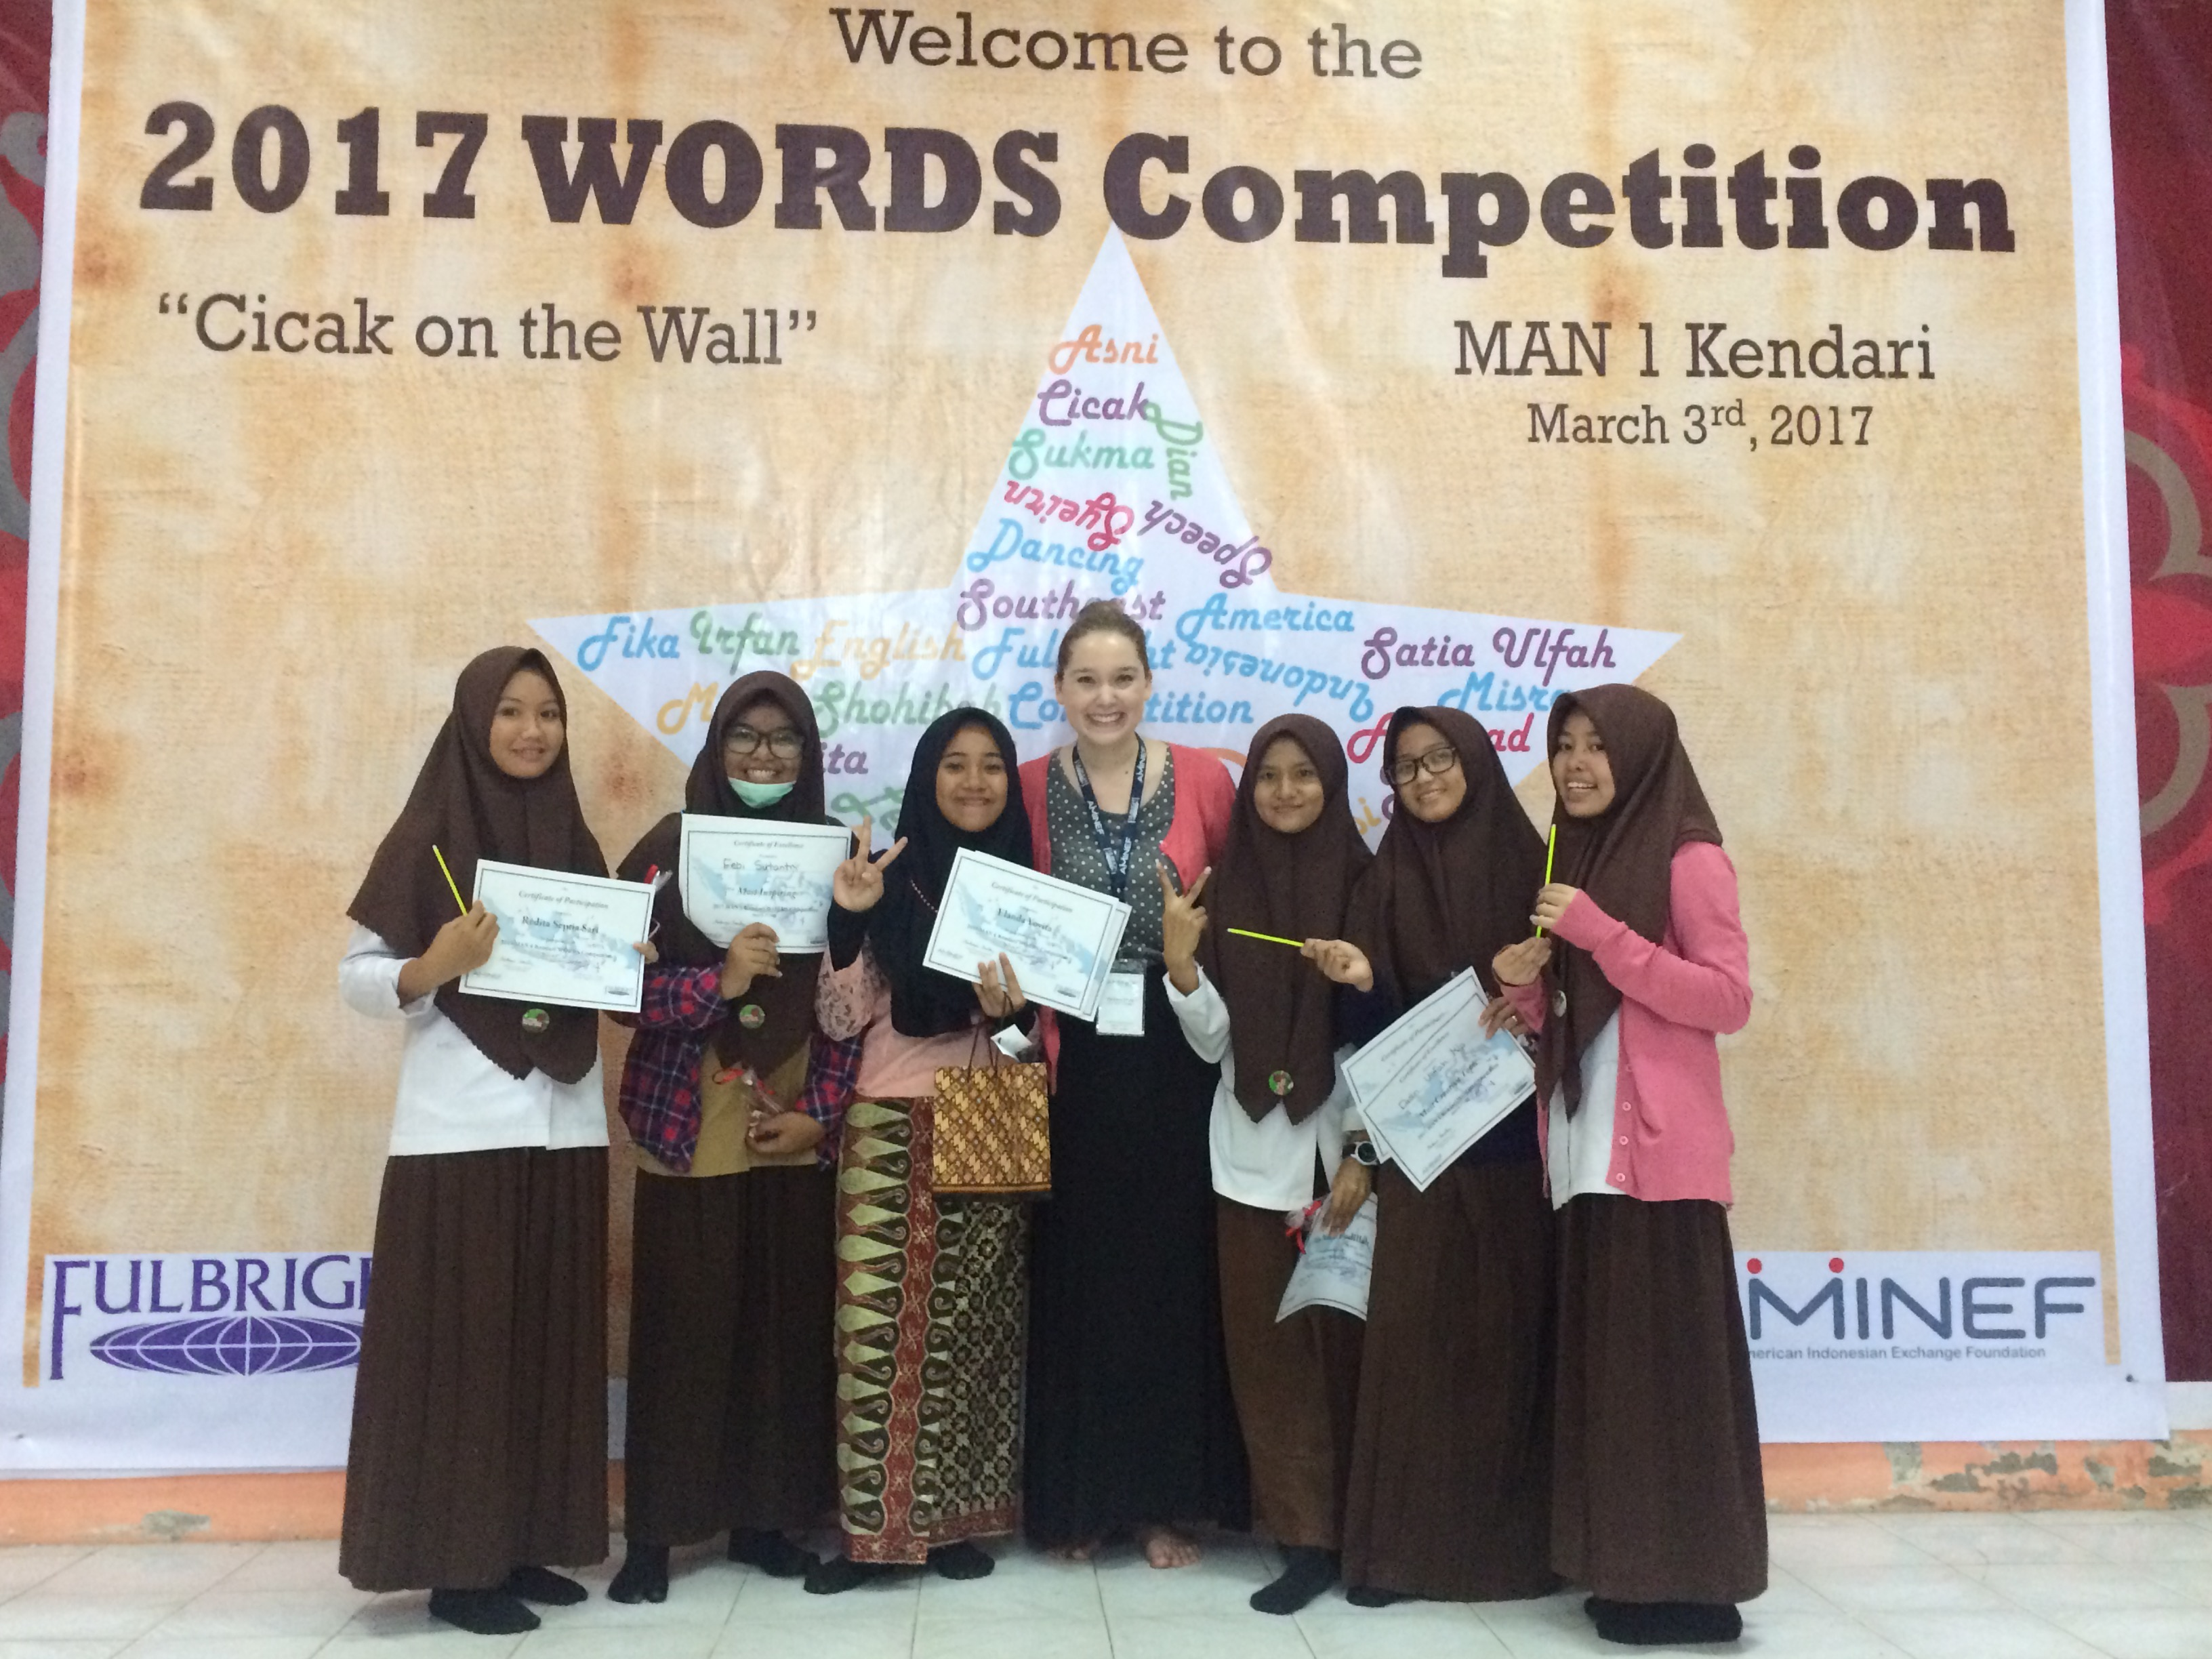 WORDS Competition 2017 at MAN 1 Kendari - The Year of Living Audaciously